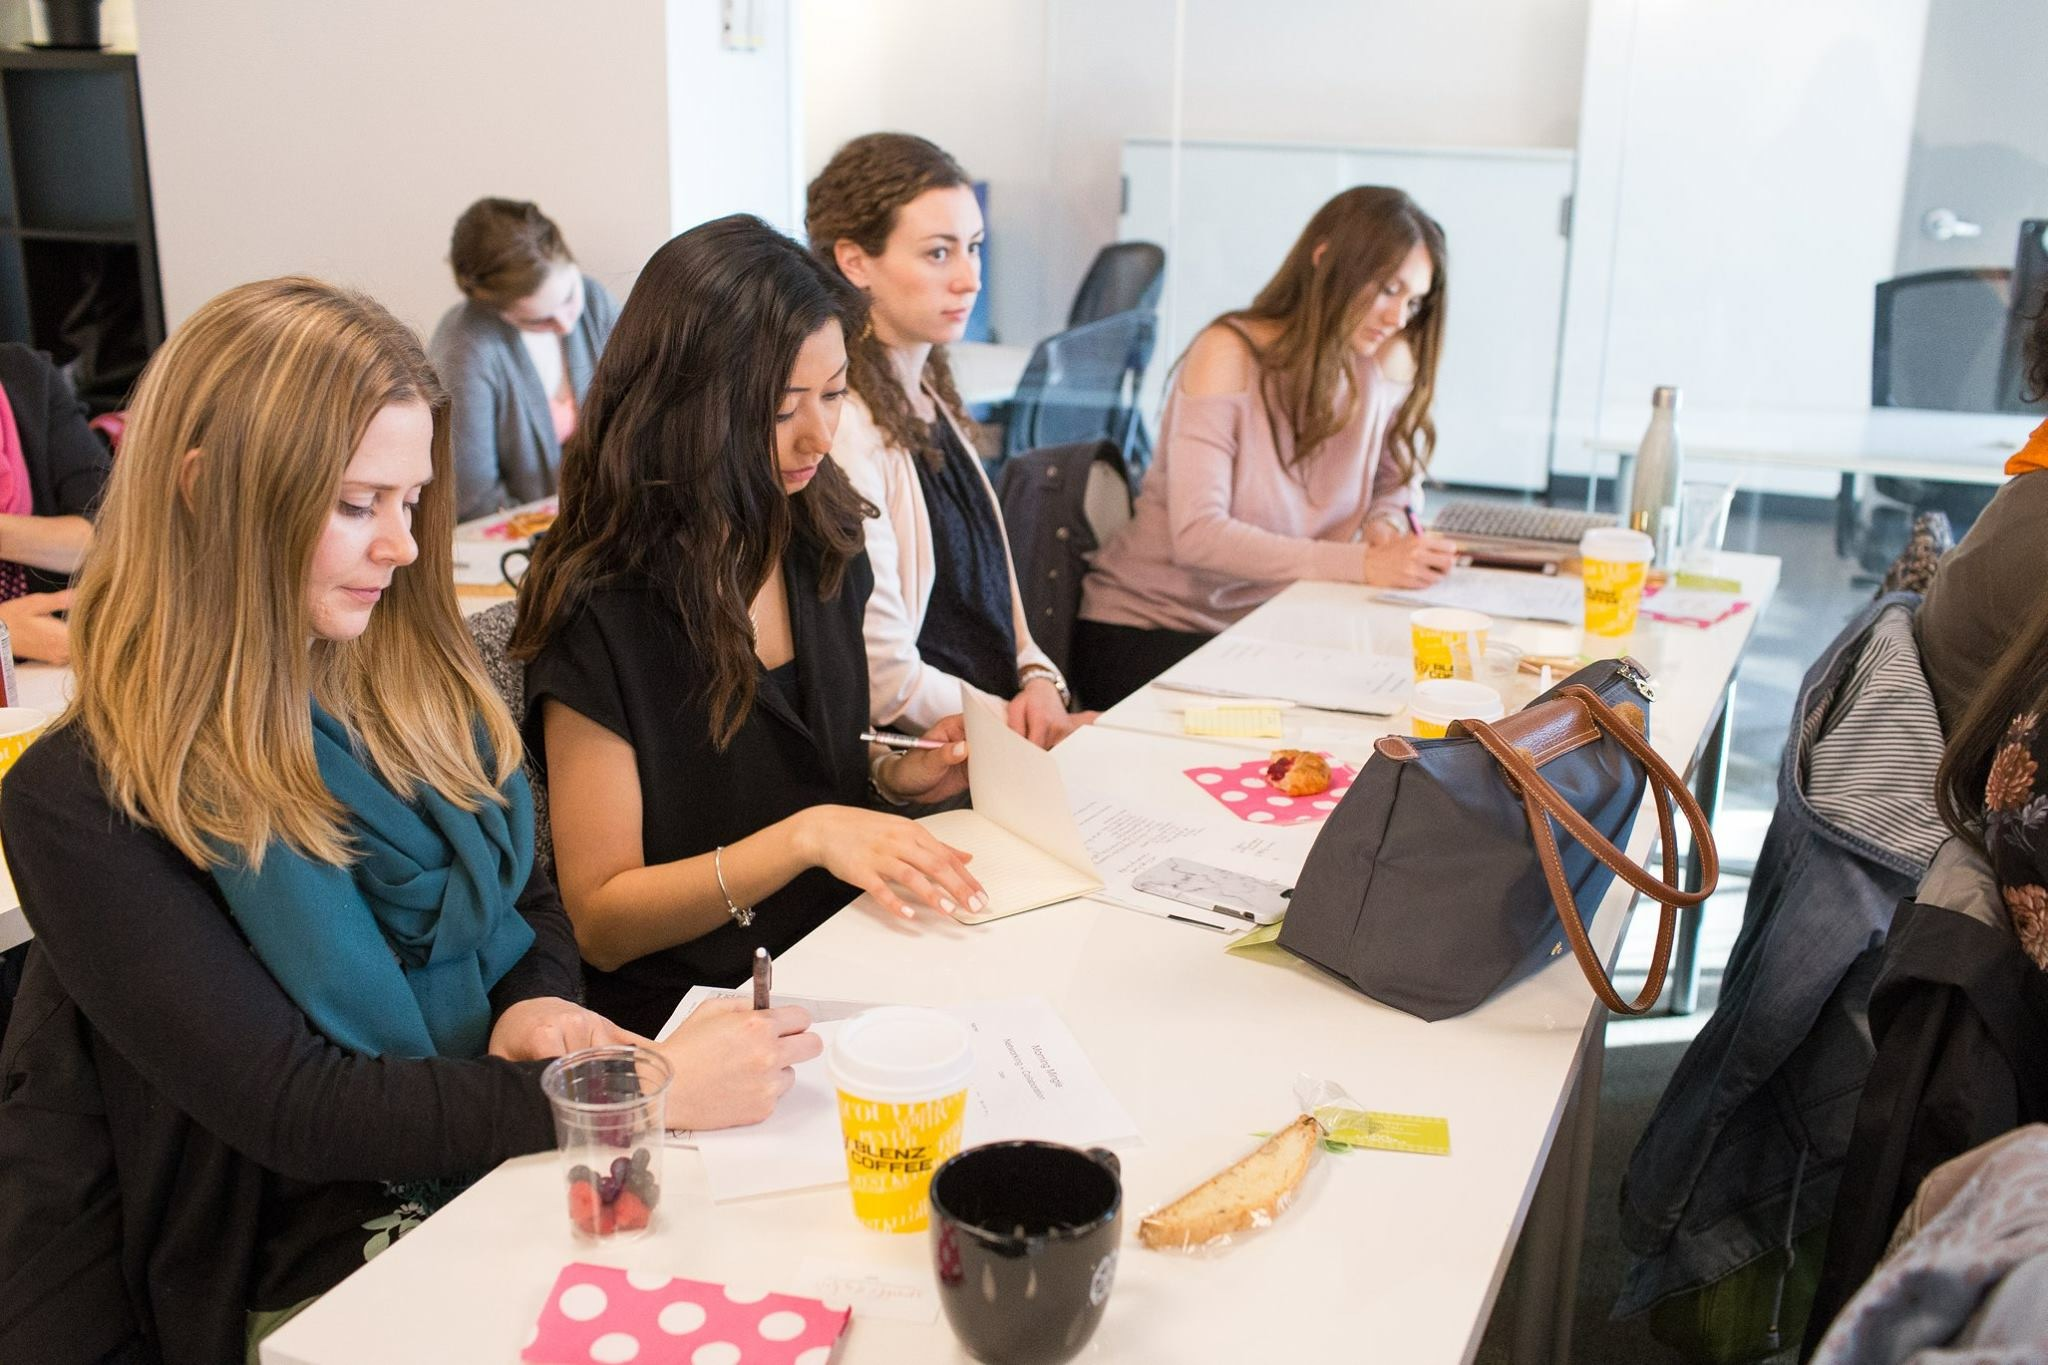 Photo from Vancity Business Babes Morning Mingle, by @misshollyho